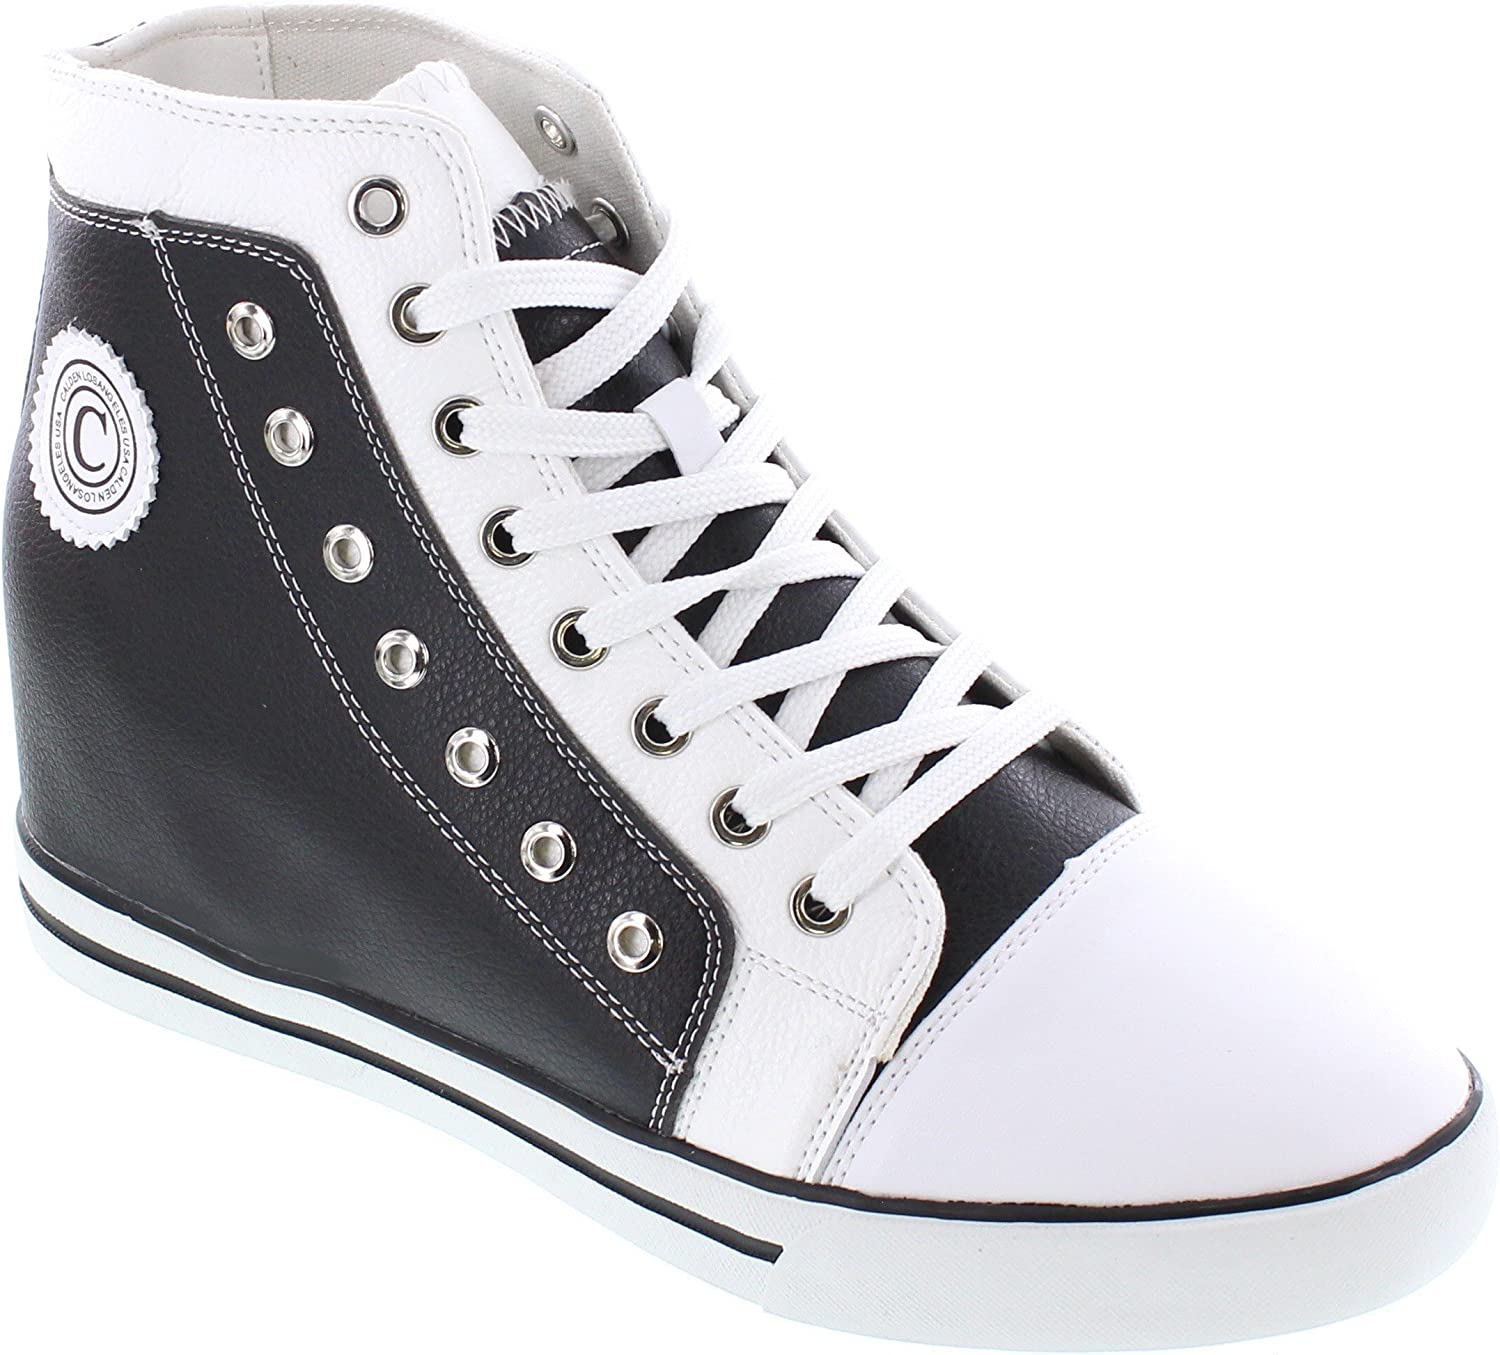 Calden Men's Invisible Height Increasing Elevator shoes - Black White Leather Cap-Toe Lace-up High-top Sneakers - 3.8 Inches Taller - K882895